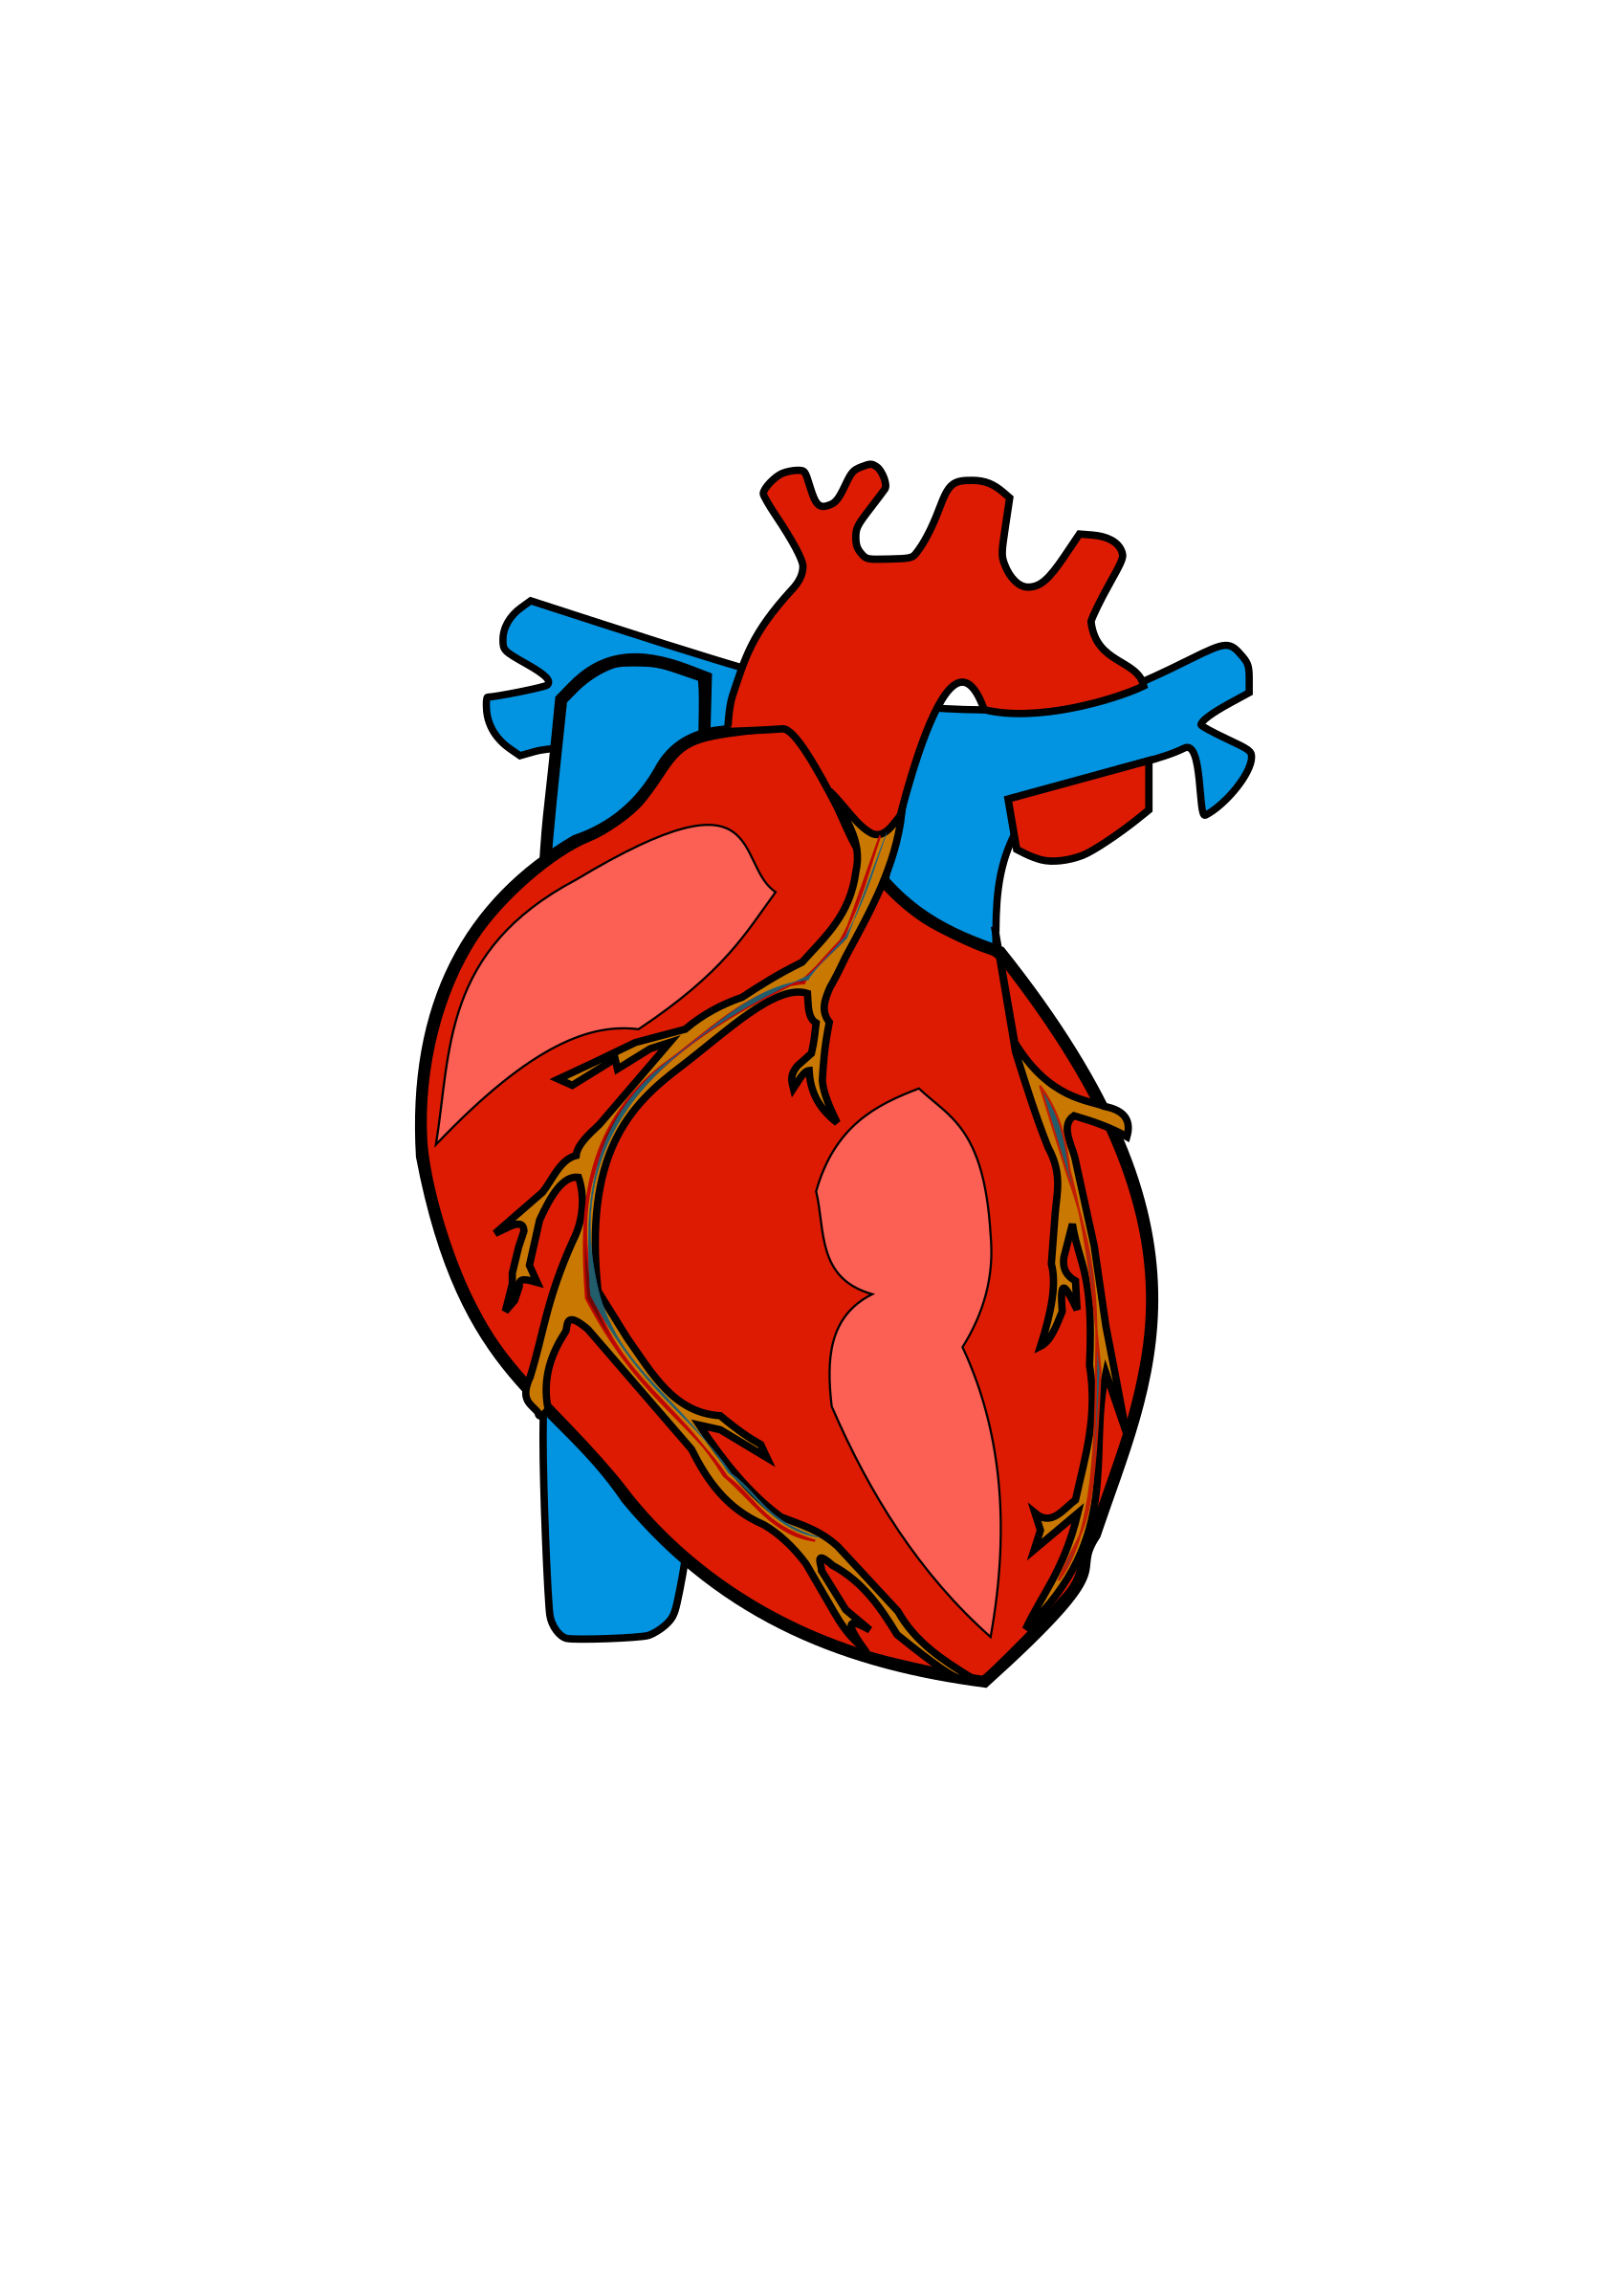 Heart in body clipart royalty free library 28+ Collection of Human Heart Clipart Png | High quality, free ... royalty free library